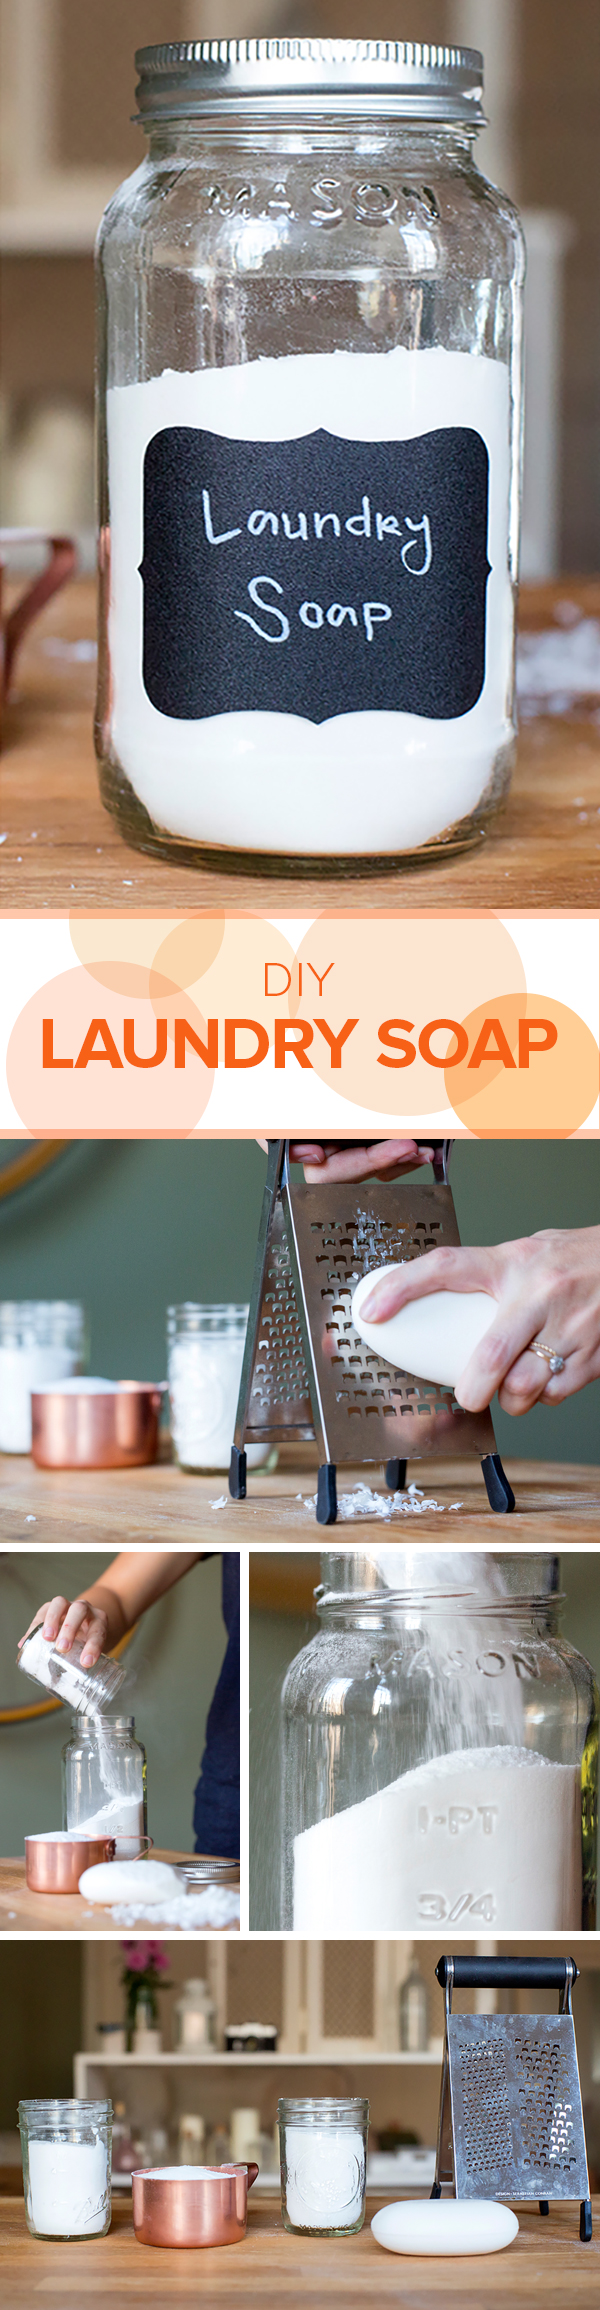 You can make your own laundry soap in just a few steps.